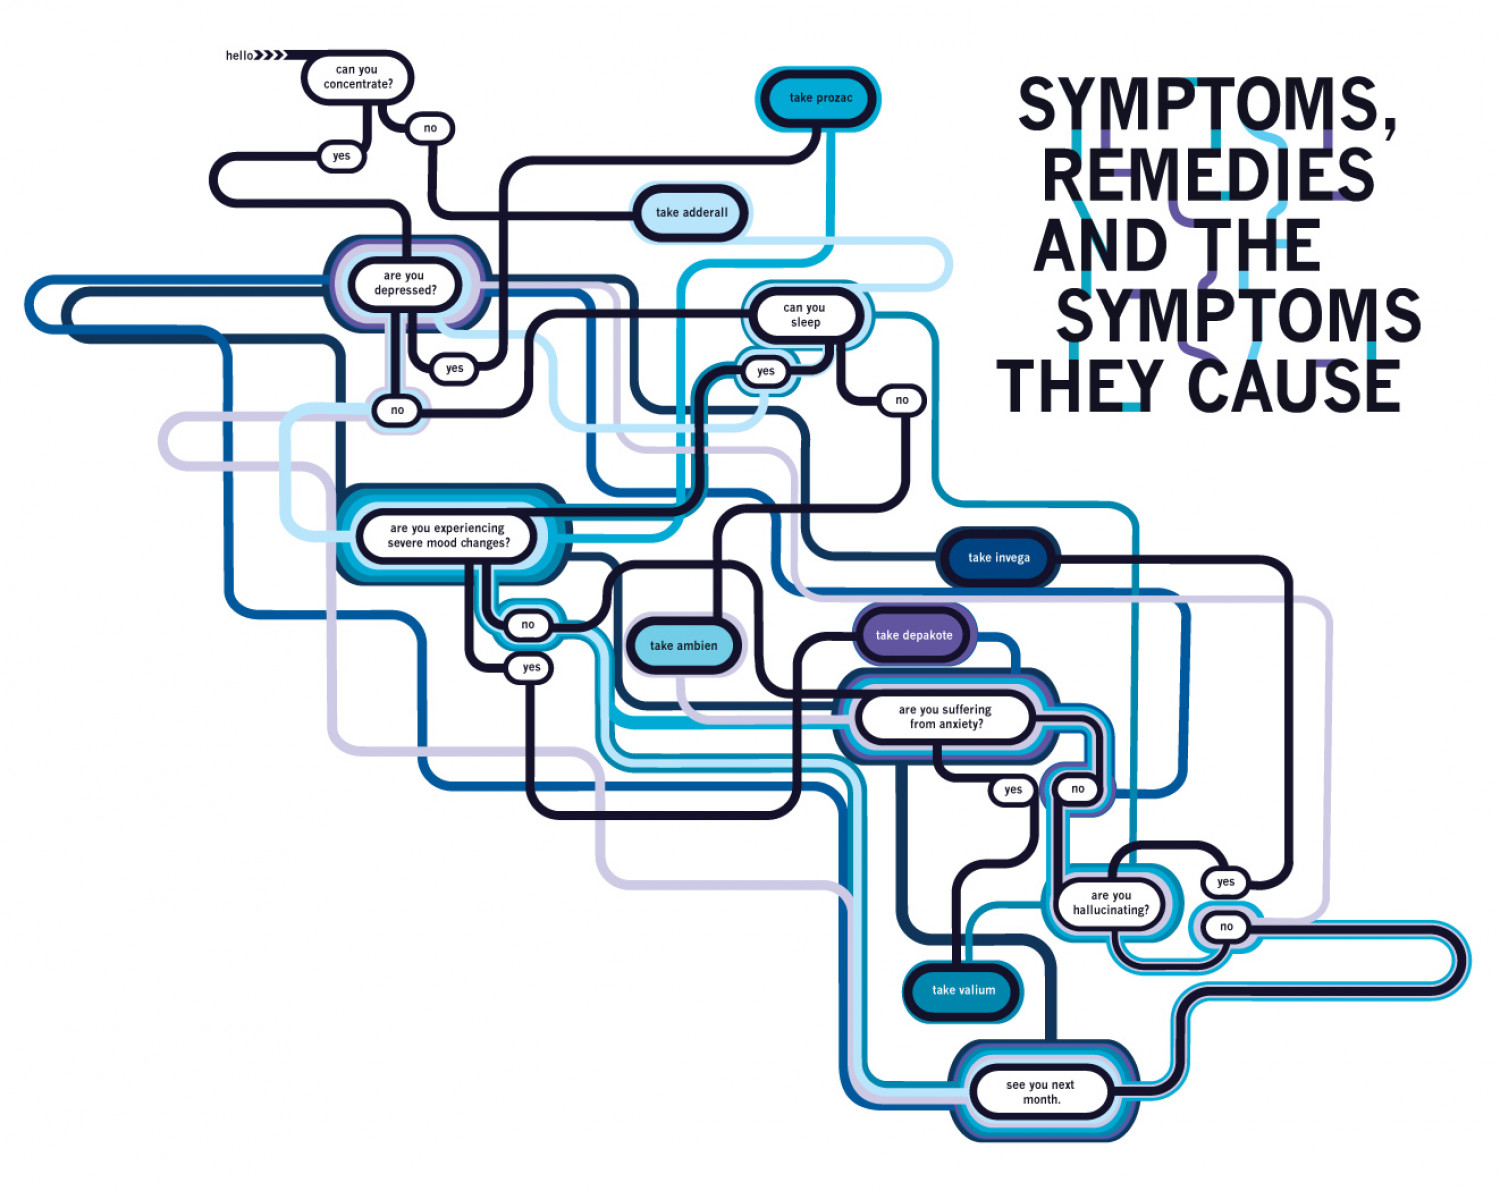 Symptoms, Remedies, and Symptoms Infographic